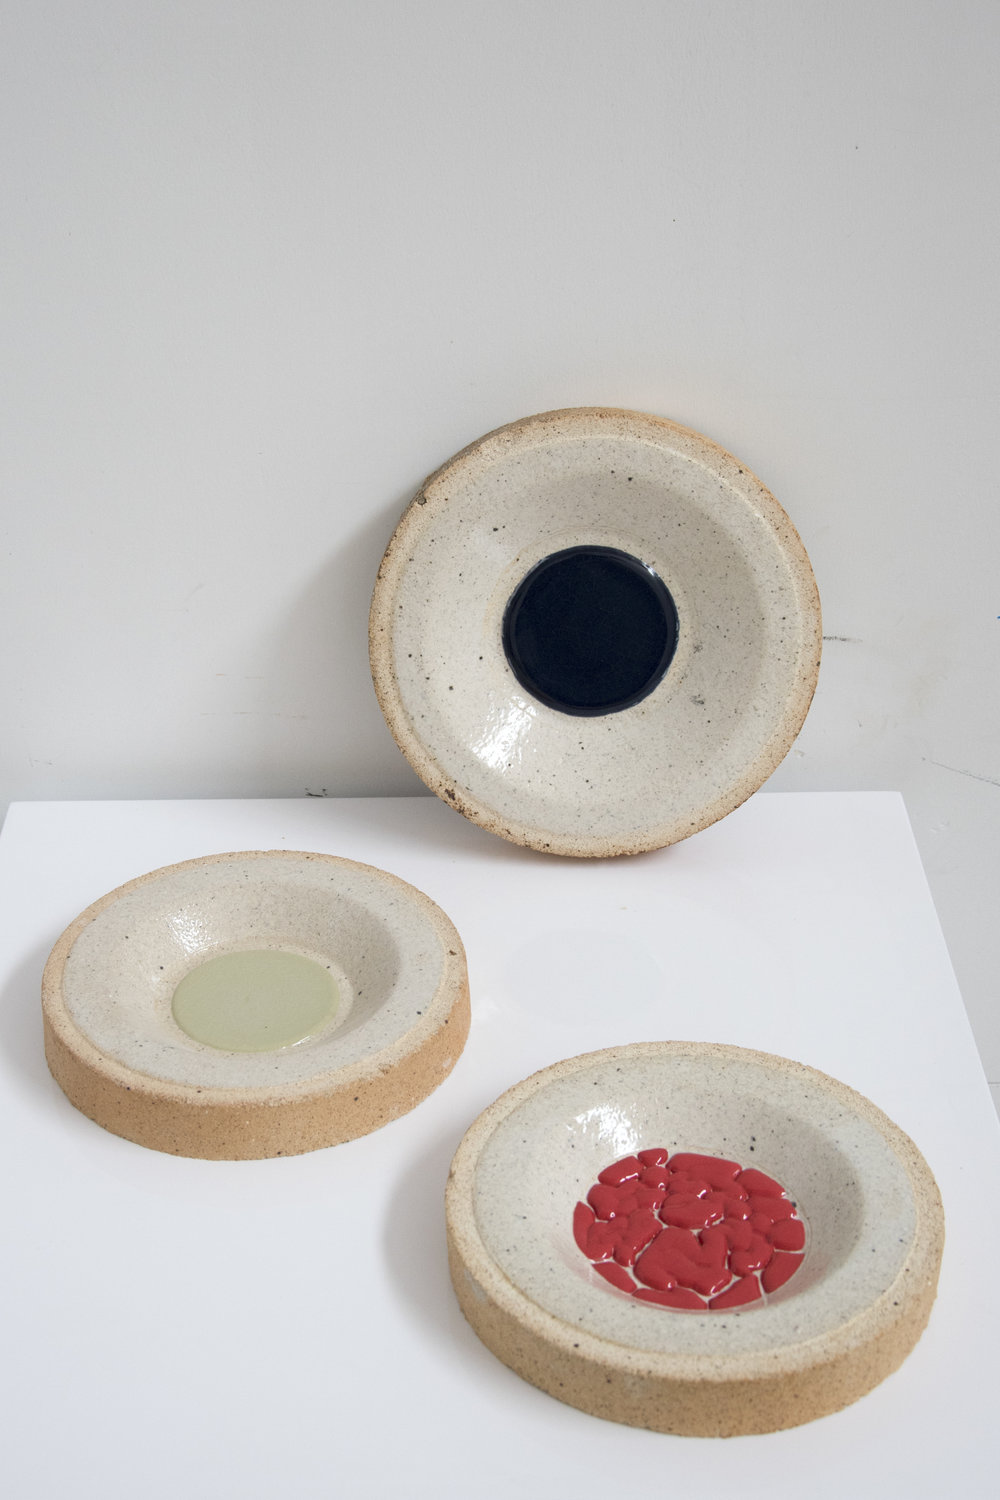 JDZ porcelain works - David Derksen03.jpg